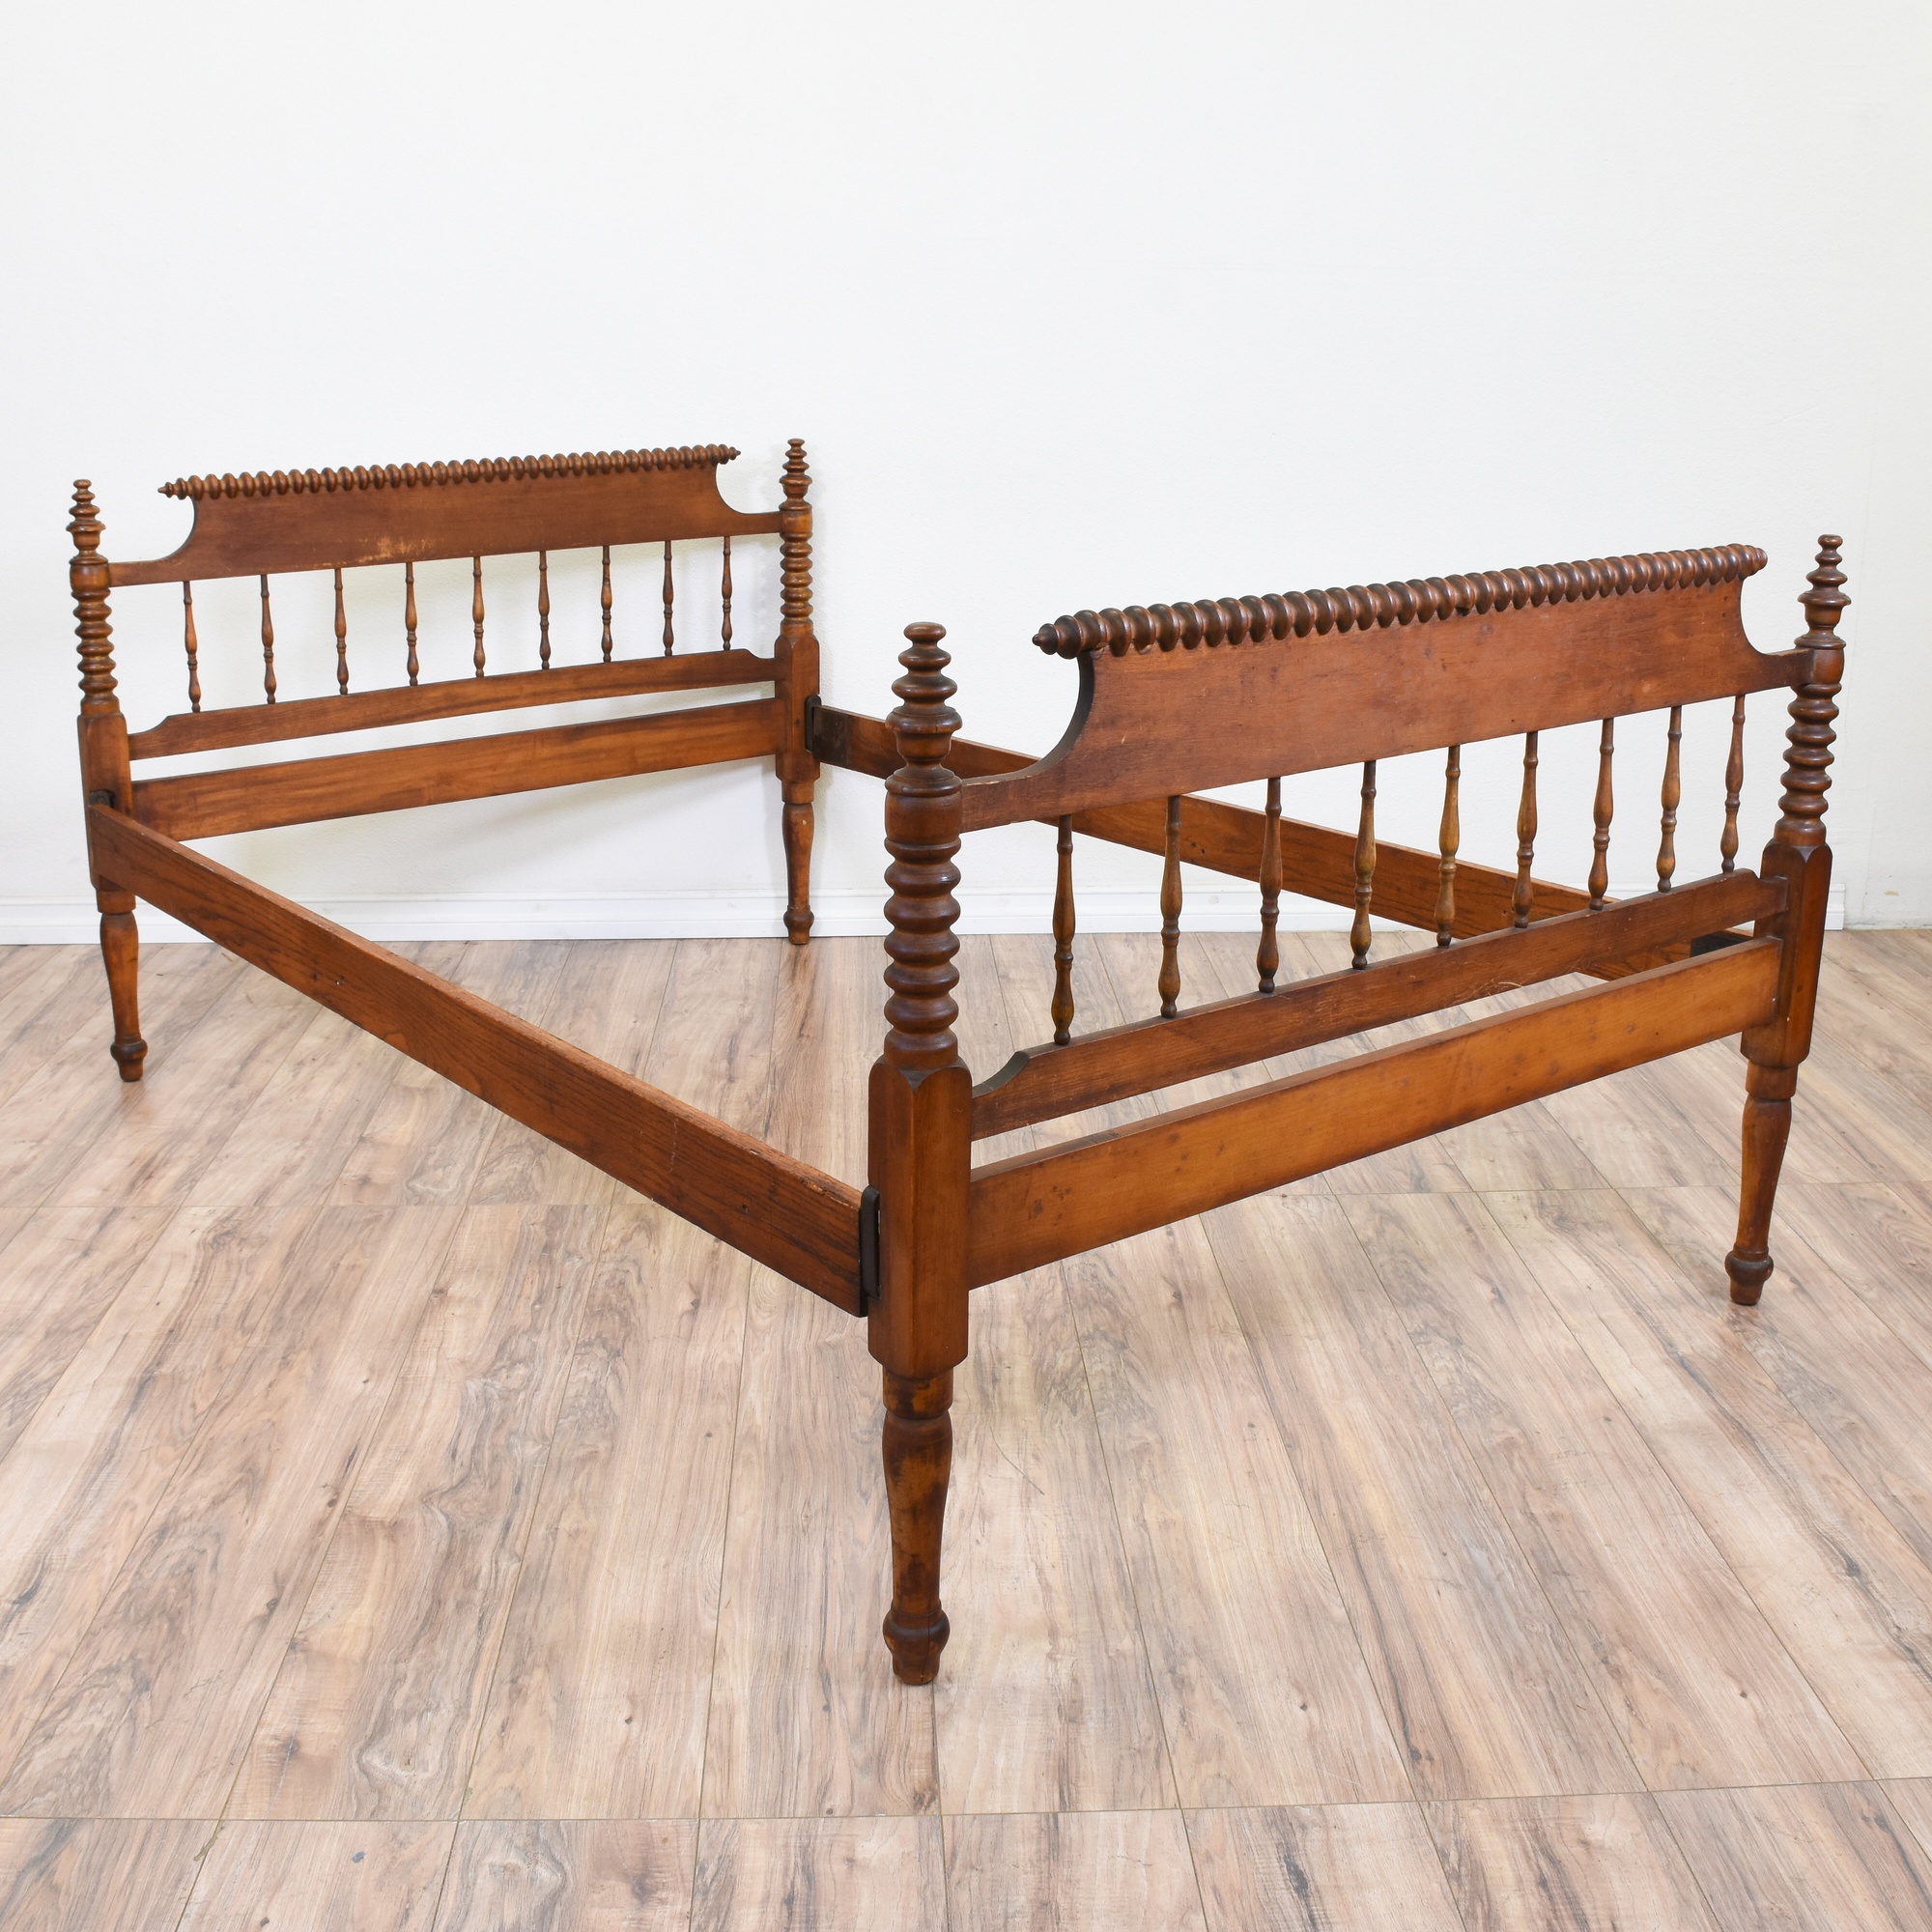 Antique Jenny Lind Style Full Sized Bed Loveseat Vintage Furniture San Diego Los Angeles